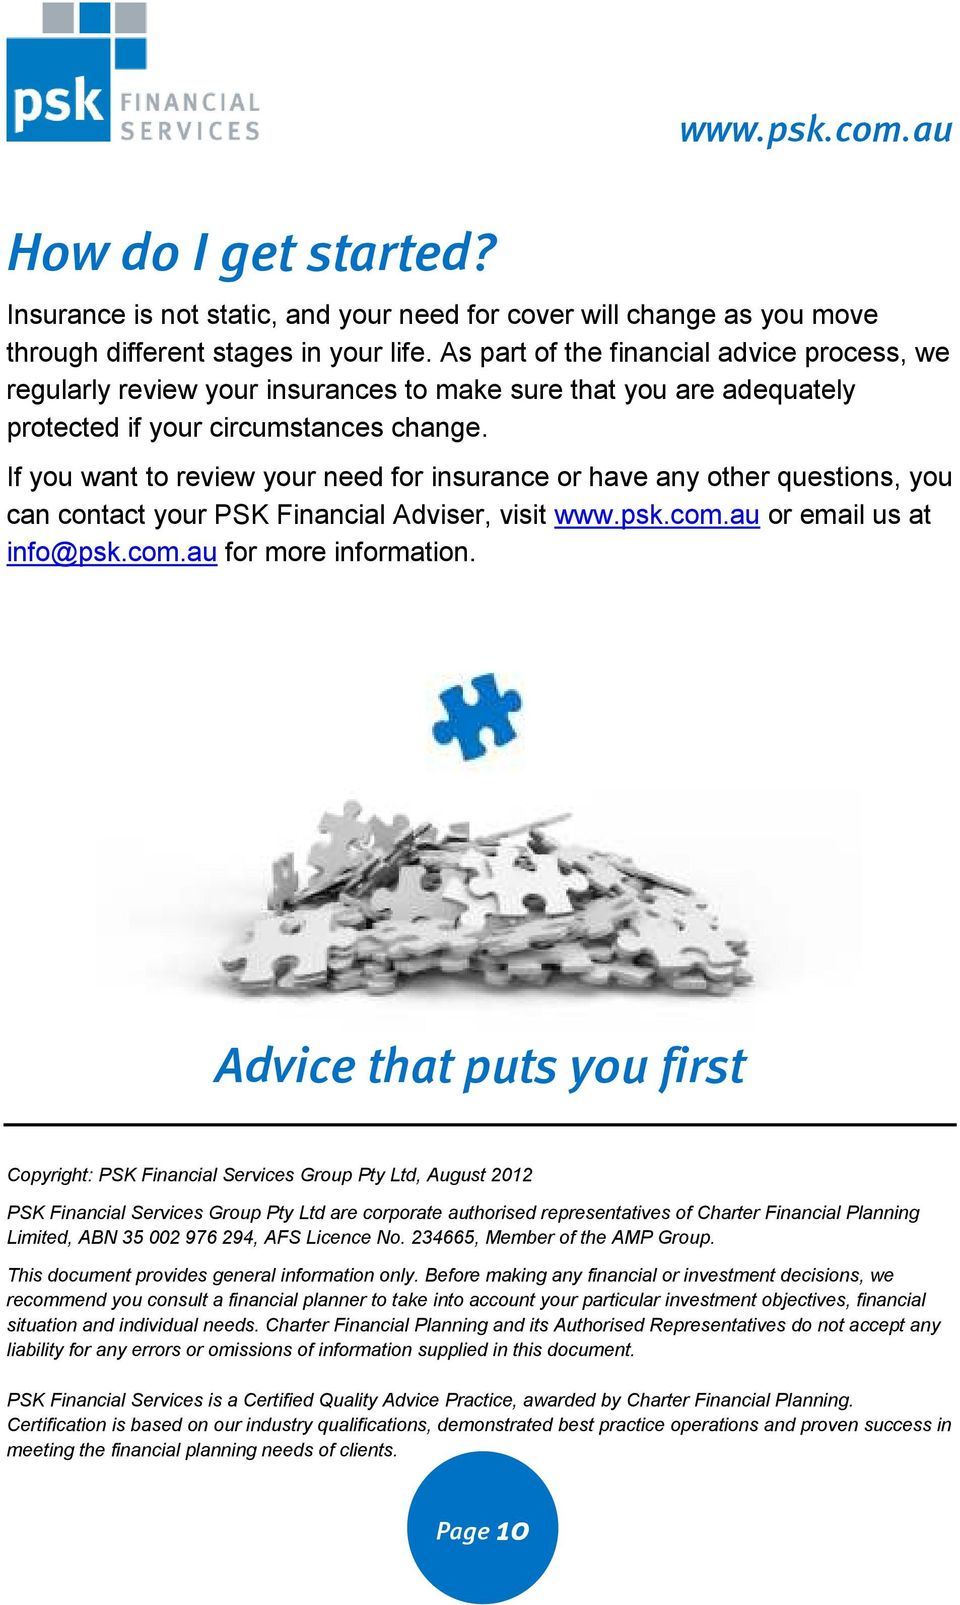 If you want to review your need for insurance or have any other questions, you can contact your PSK Financial Adviser, visit www.psk.com.au or email us at info@psk.com.au for more information.